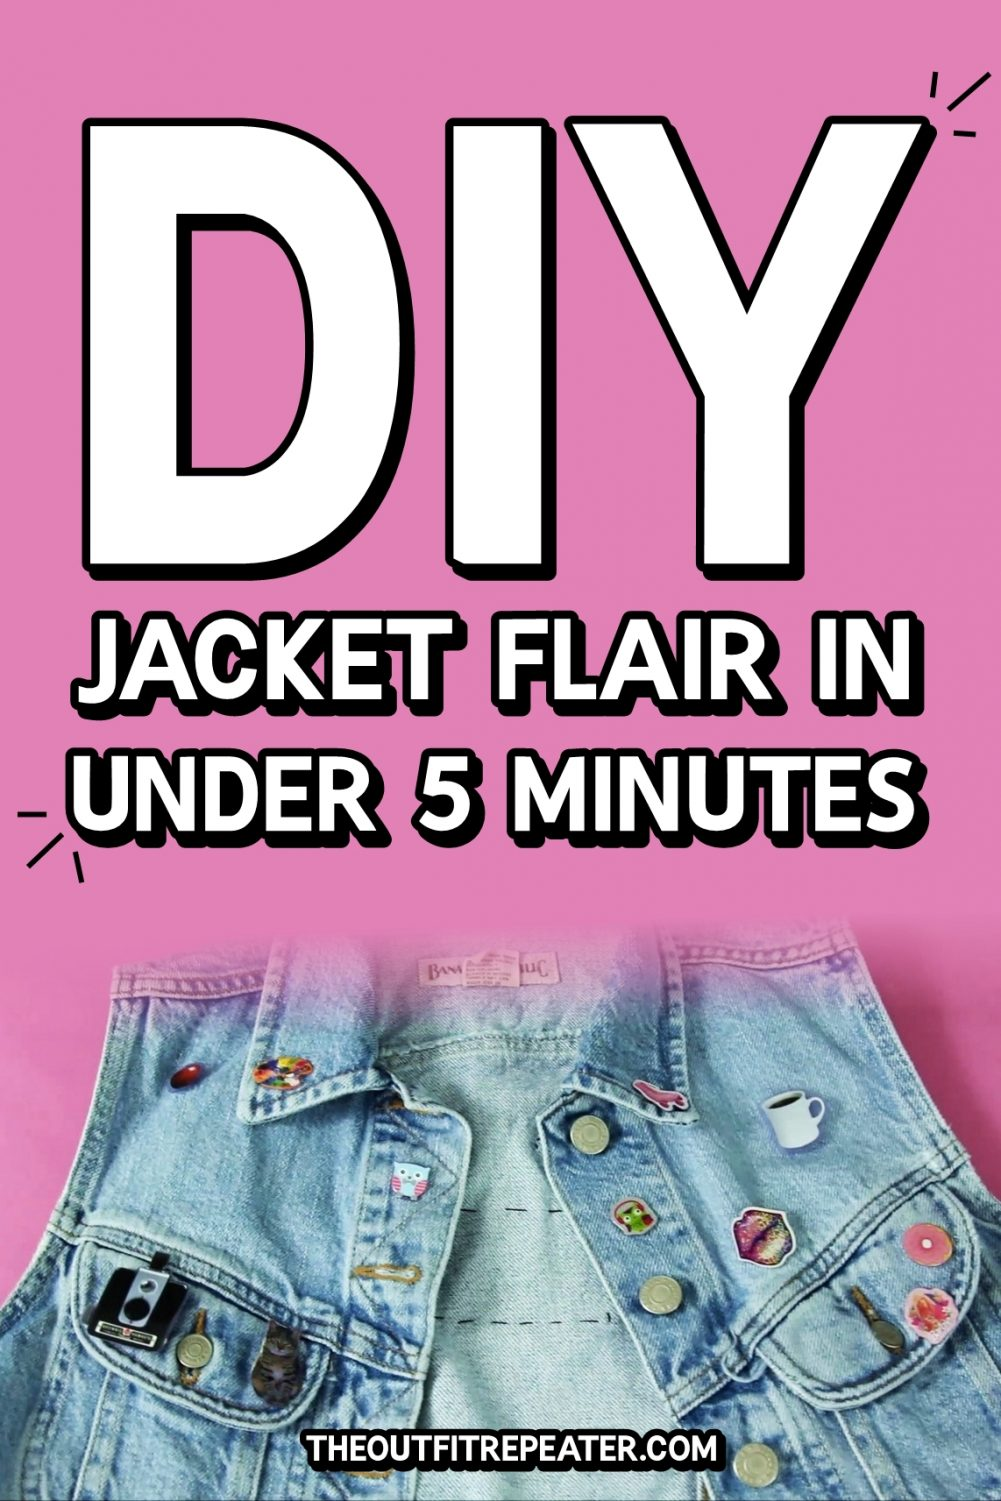 DIY Jacket Flair in Under 5 Minutes theoutfitrepeater.com